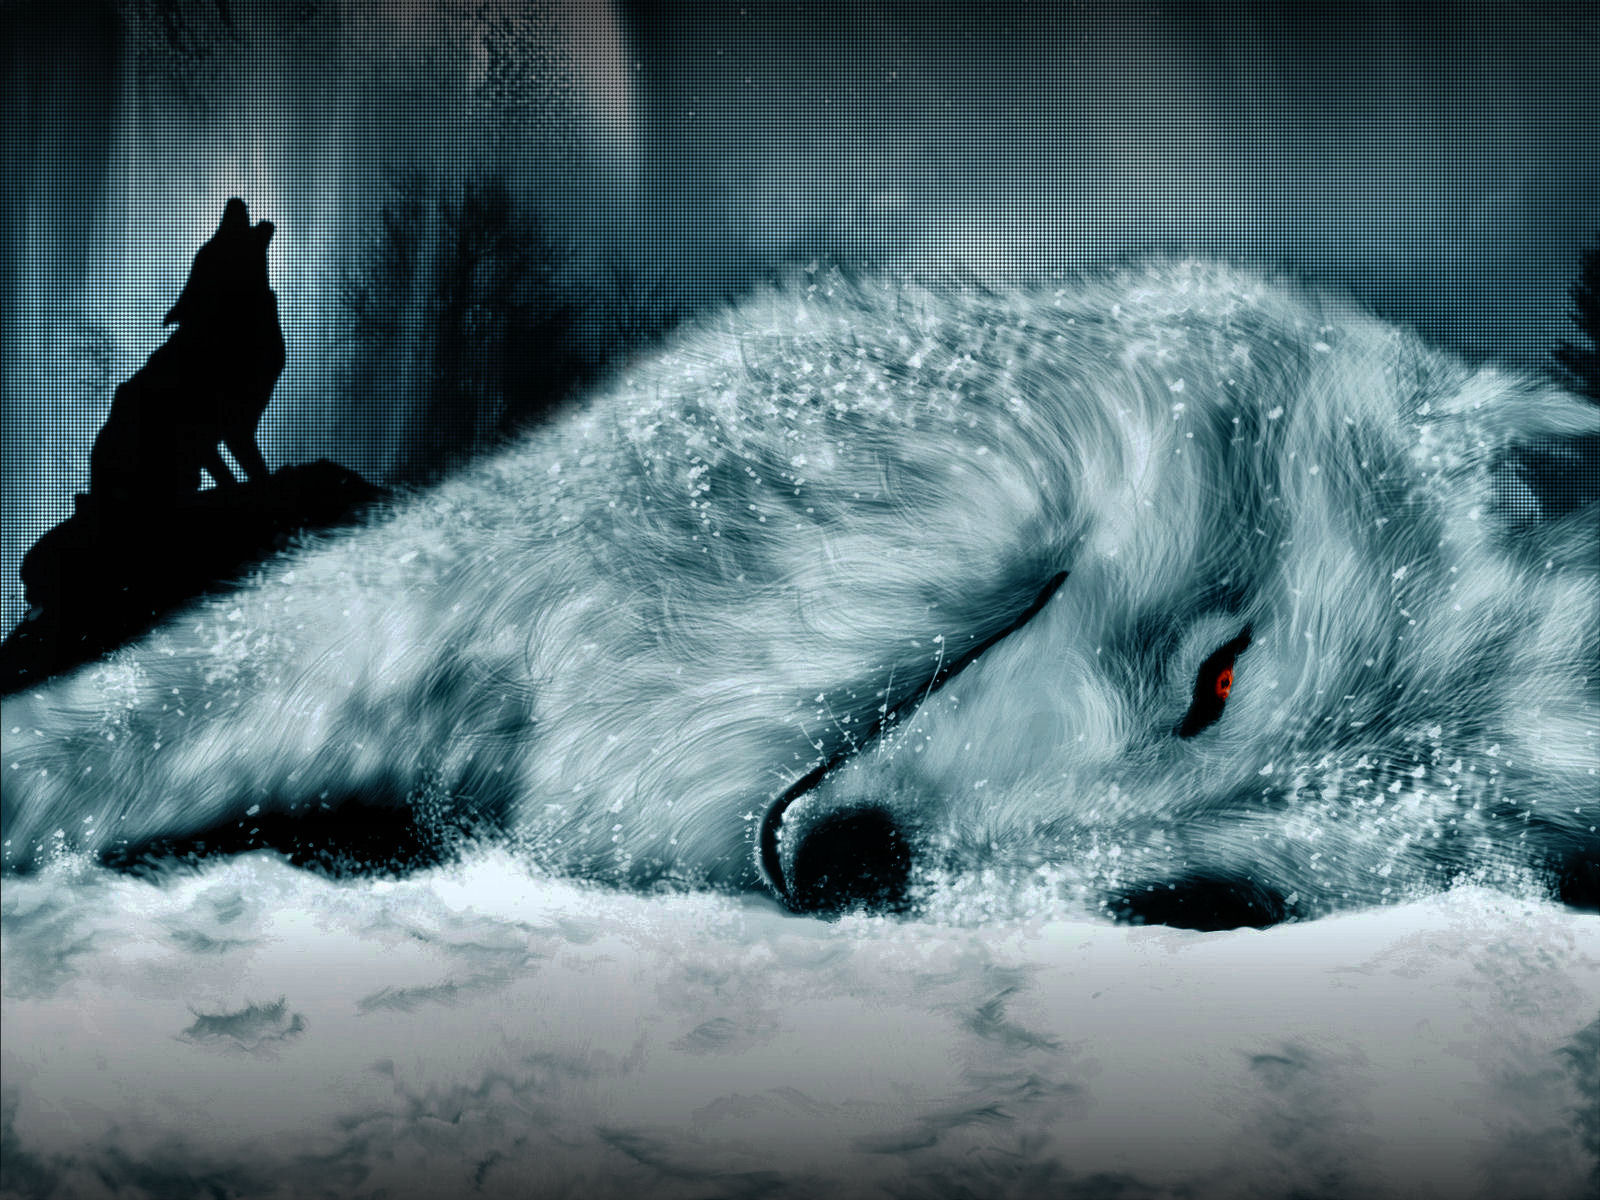 http://basik.ru/images/wolf_wallpapers_1/55_wolf.jpg